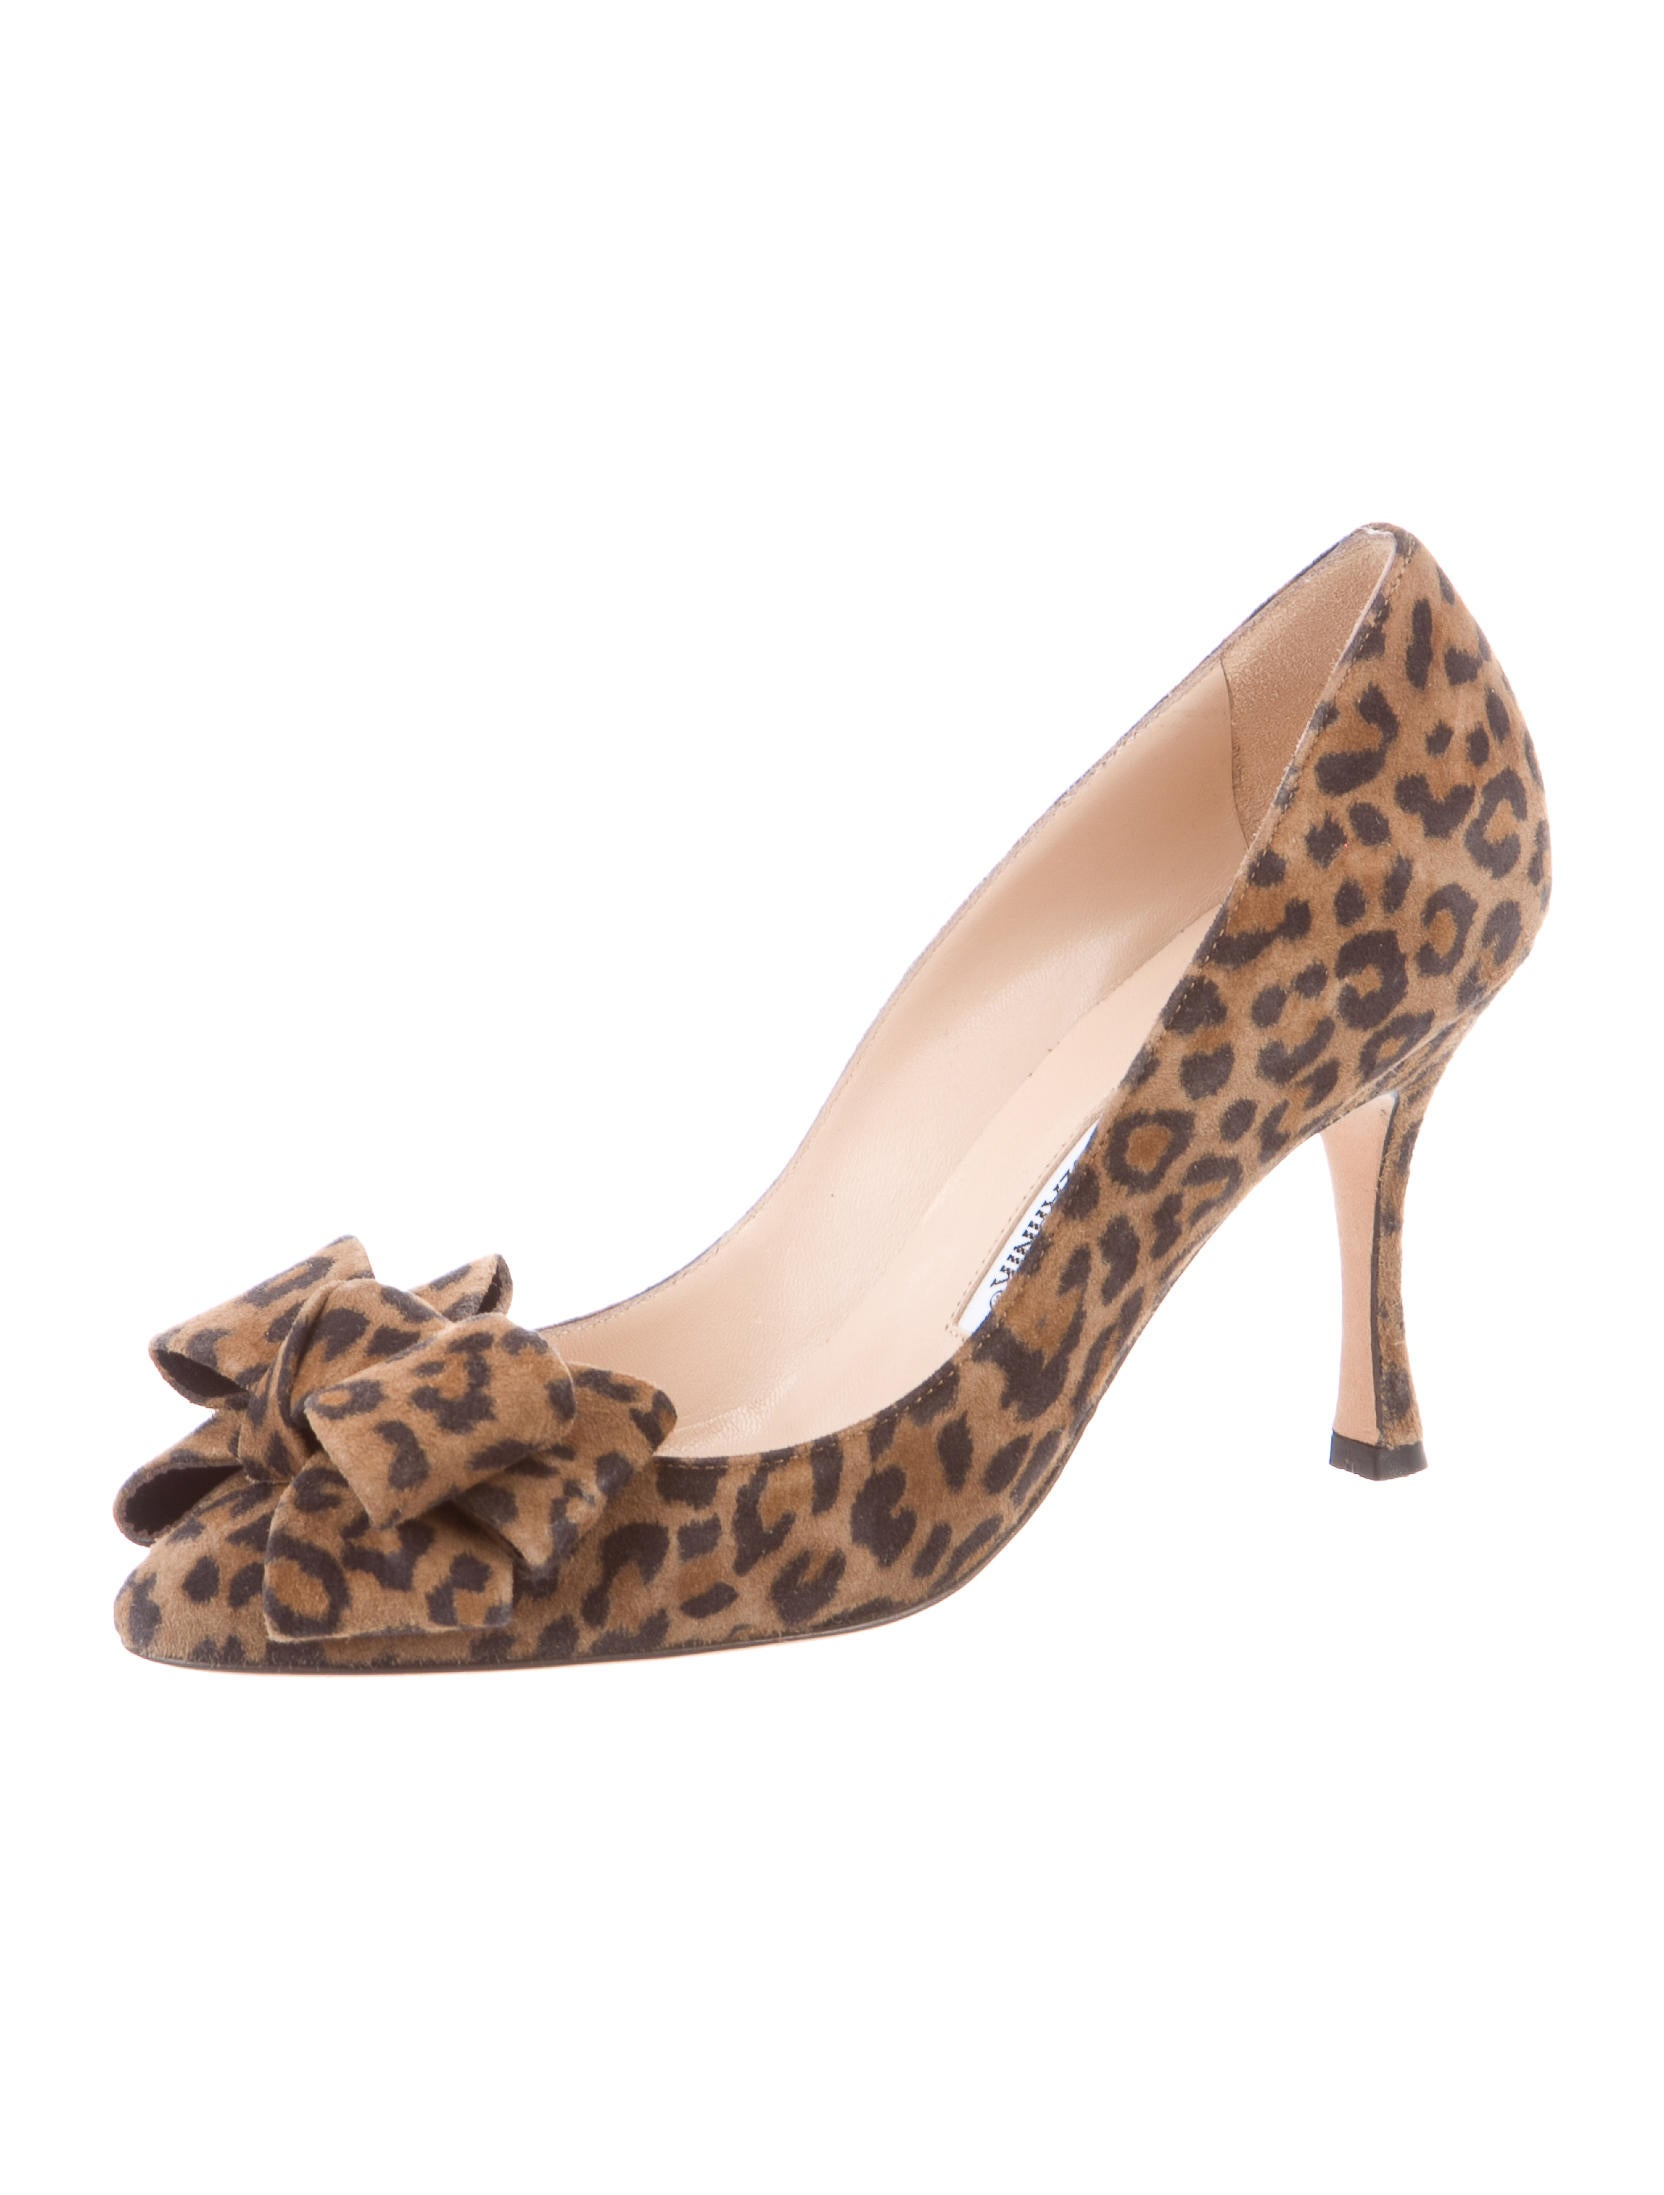 Shop for leopard print shoes online at Target. Free shipping on purchases over $35 and save 5% every day with your Target REDcard.